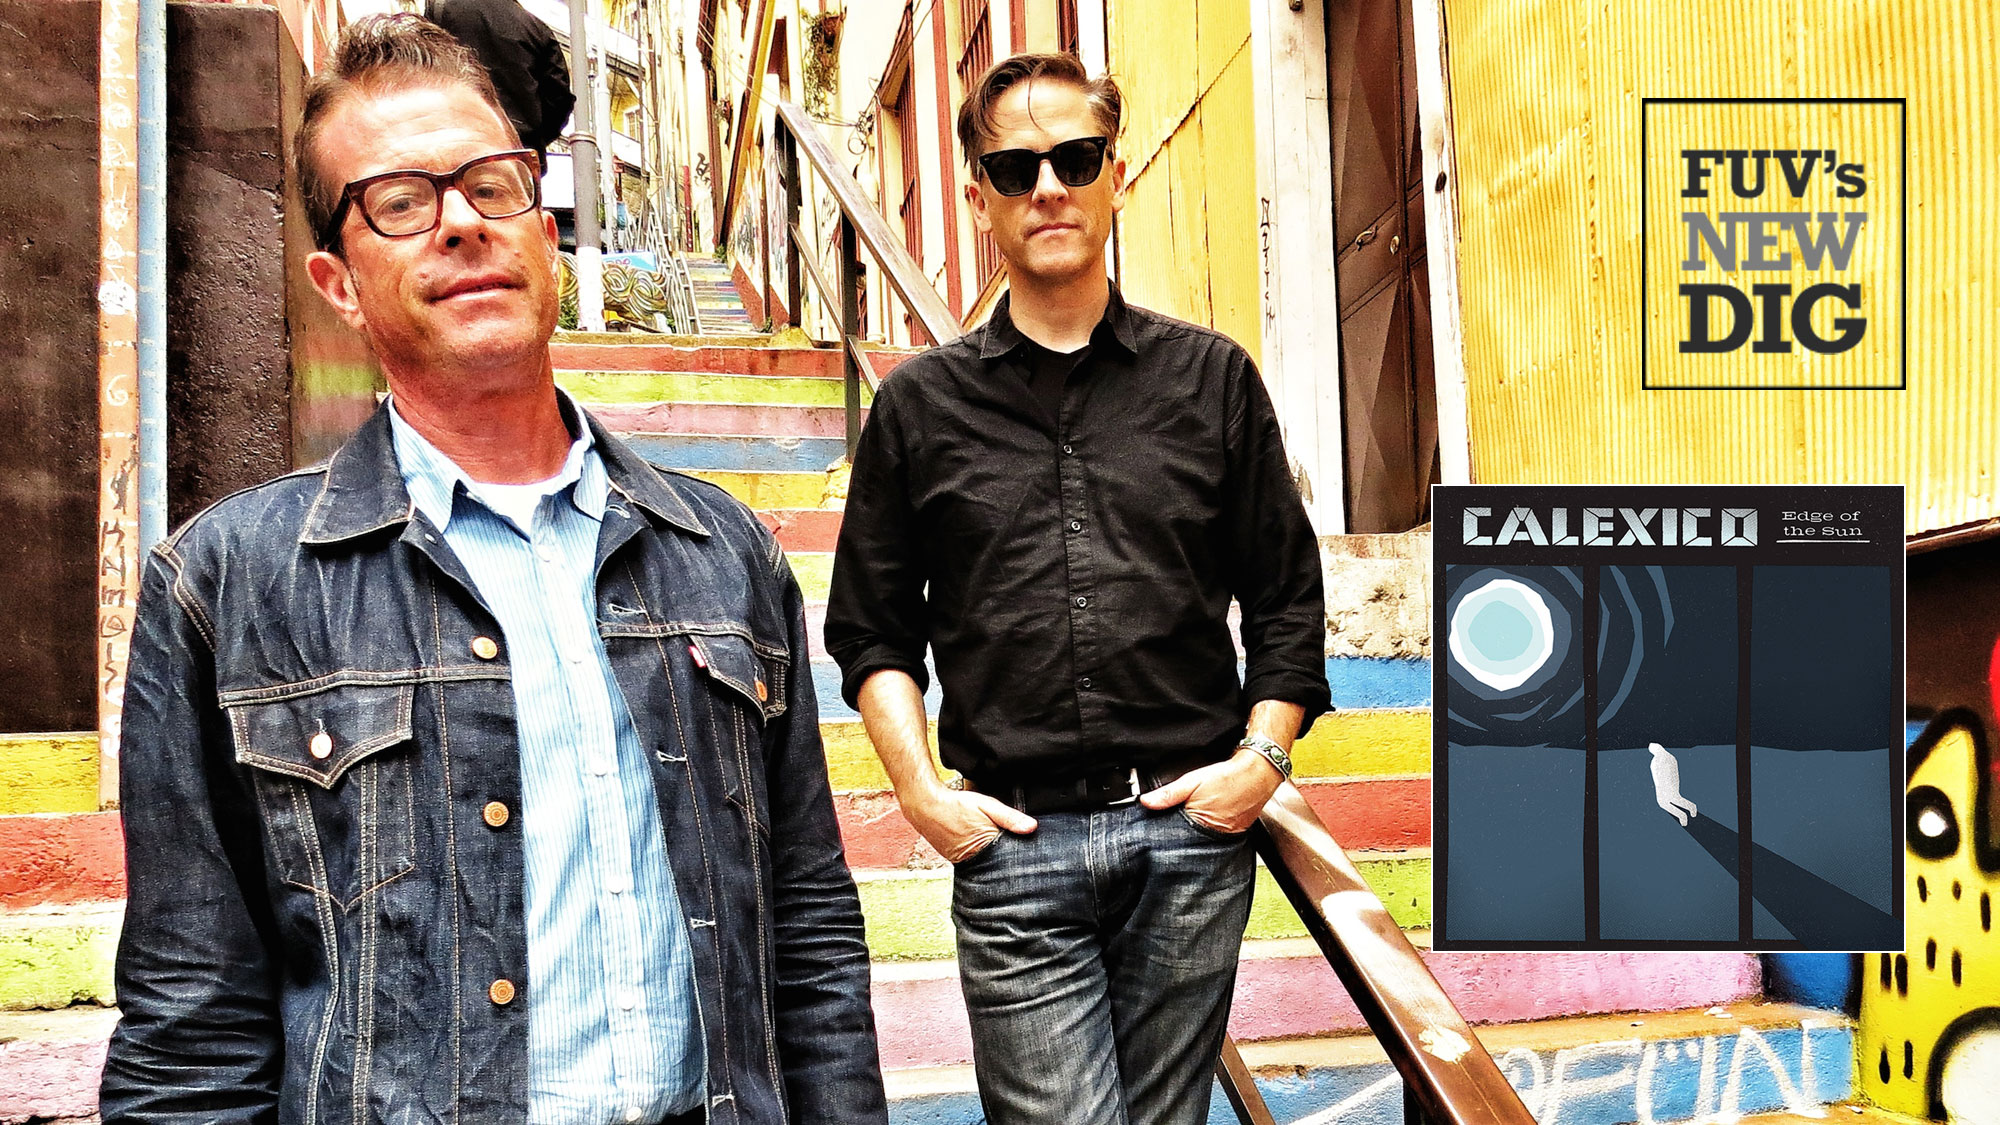 FUV's New Dig: Calexico